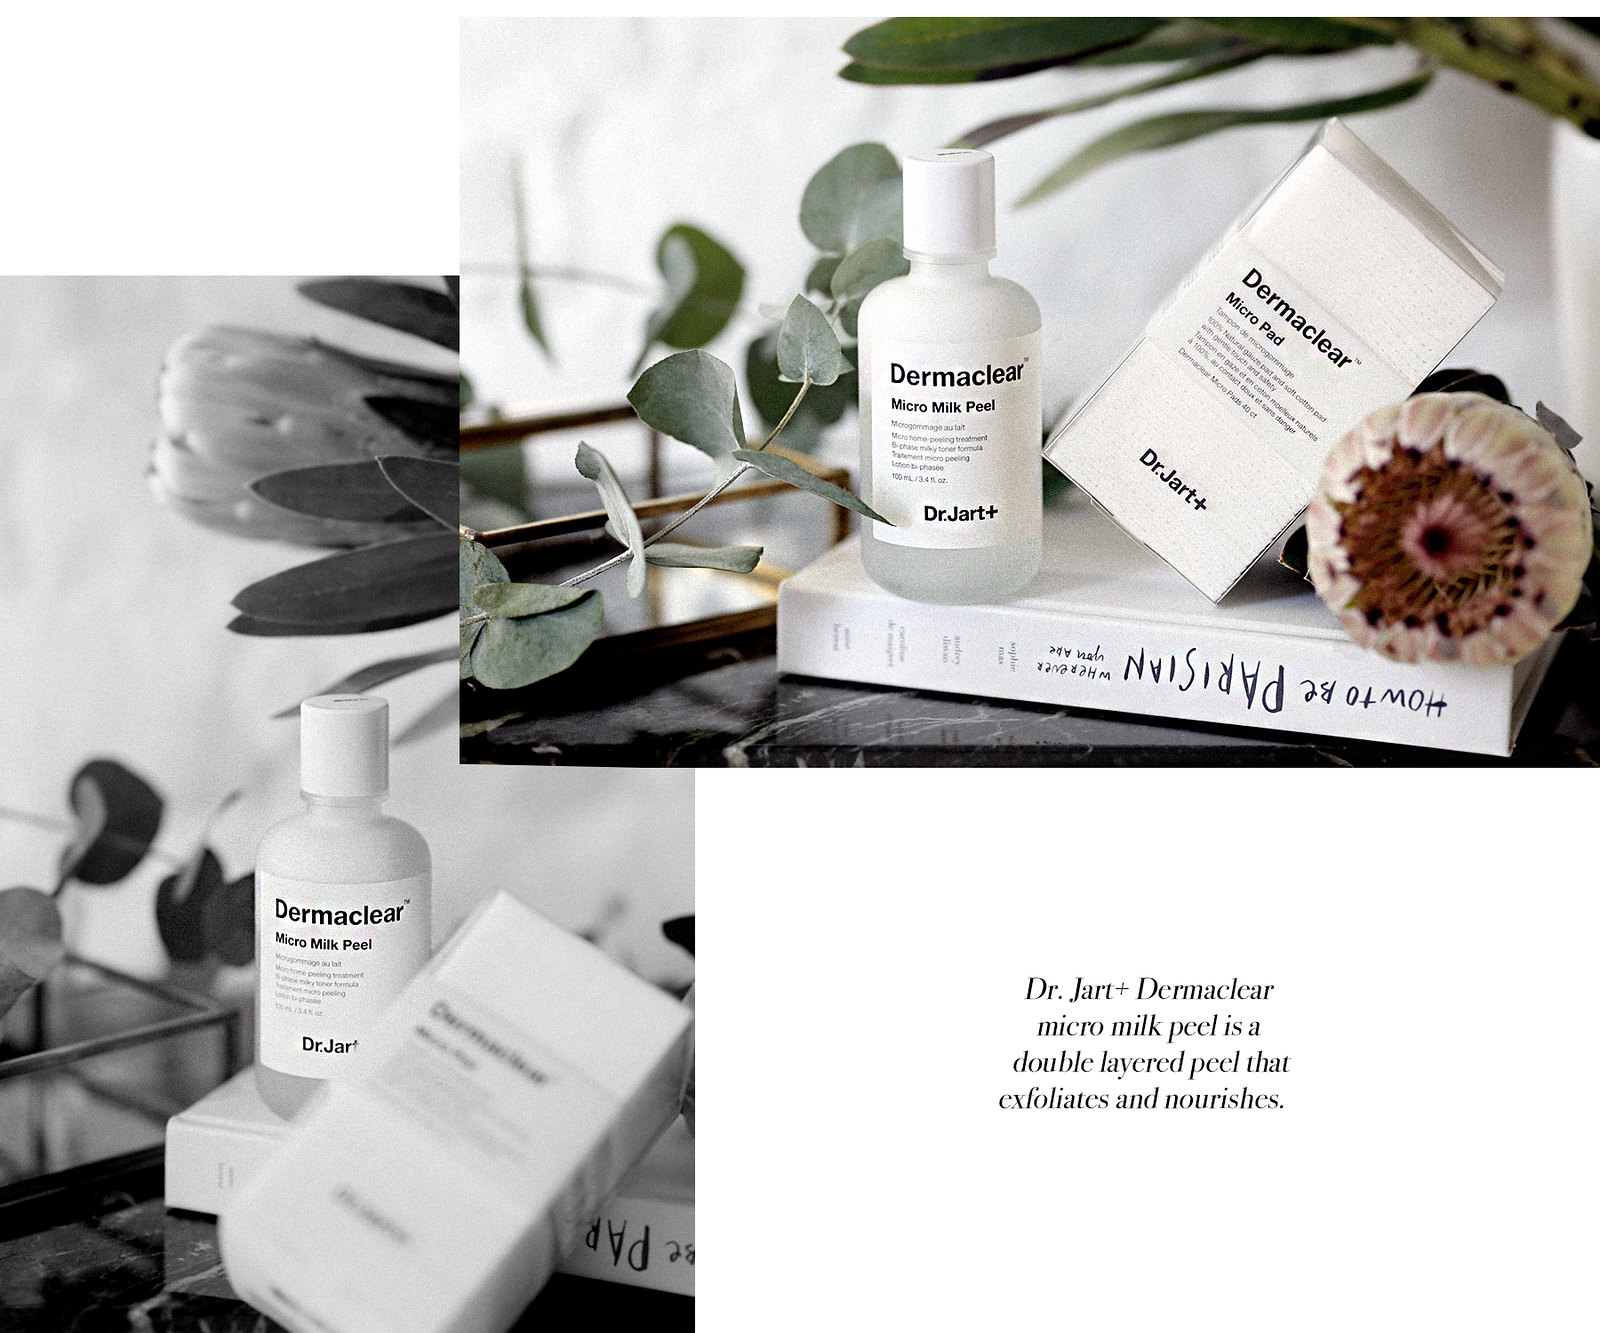 beauty favourites october caudalie de lilou l'occitane dr. jart+ dermaclear skincare pflege favoriten beautyblogger beautybloggers details lieblinge cats & dogs beauty blog düsseldorf germany photographer minimal minimalism girly ricarda schernus 3